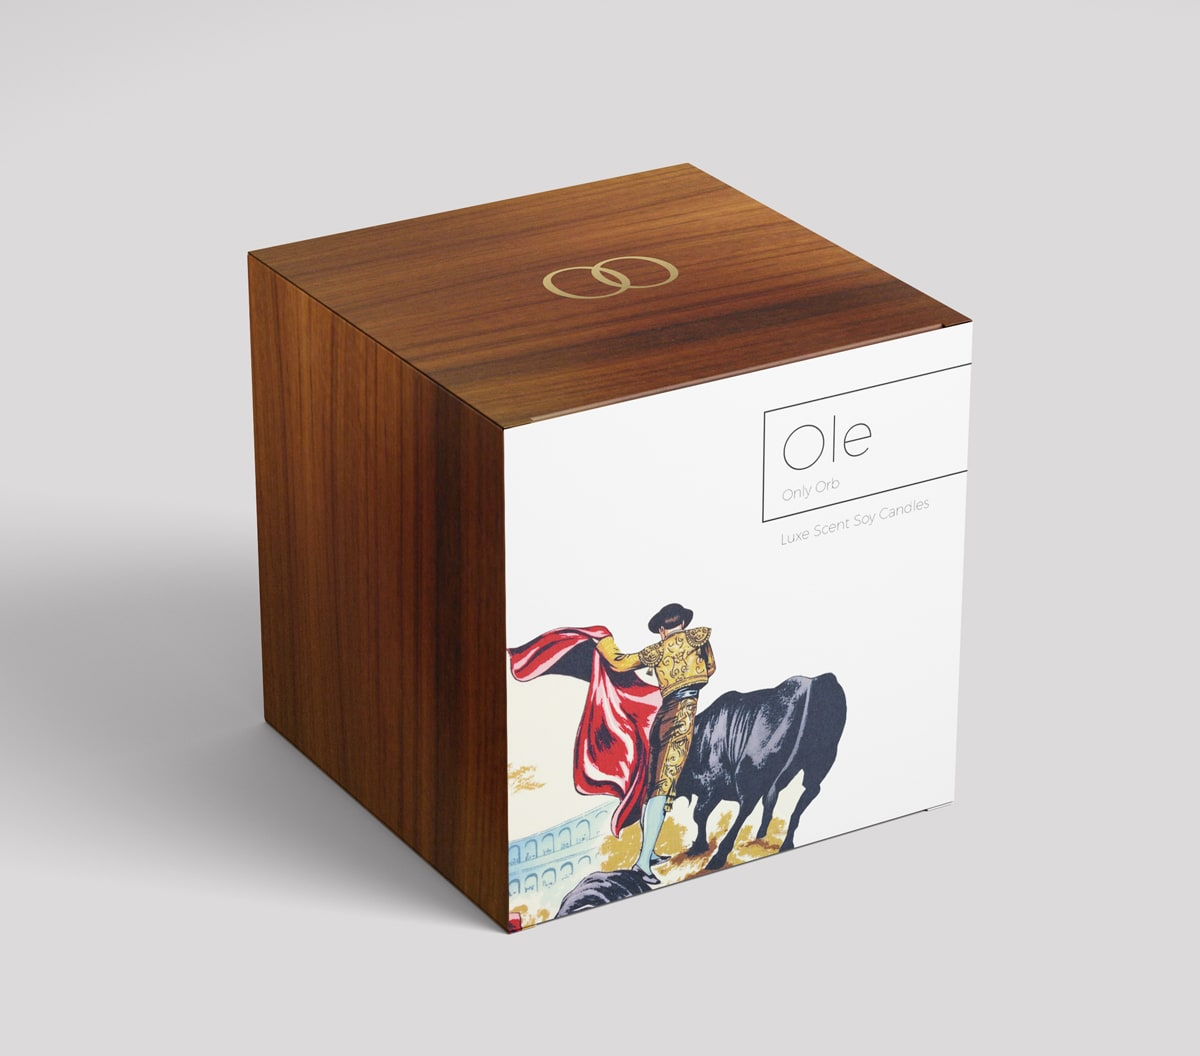 Box visualisation with bull for Ole candle